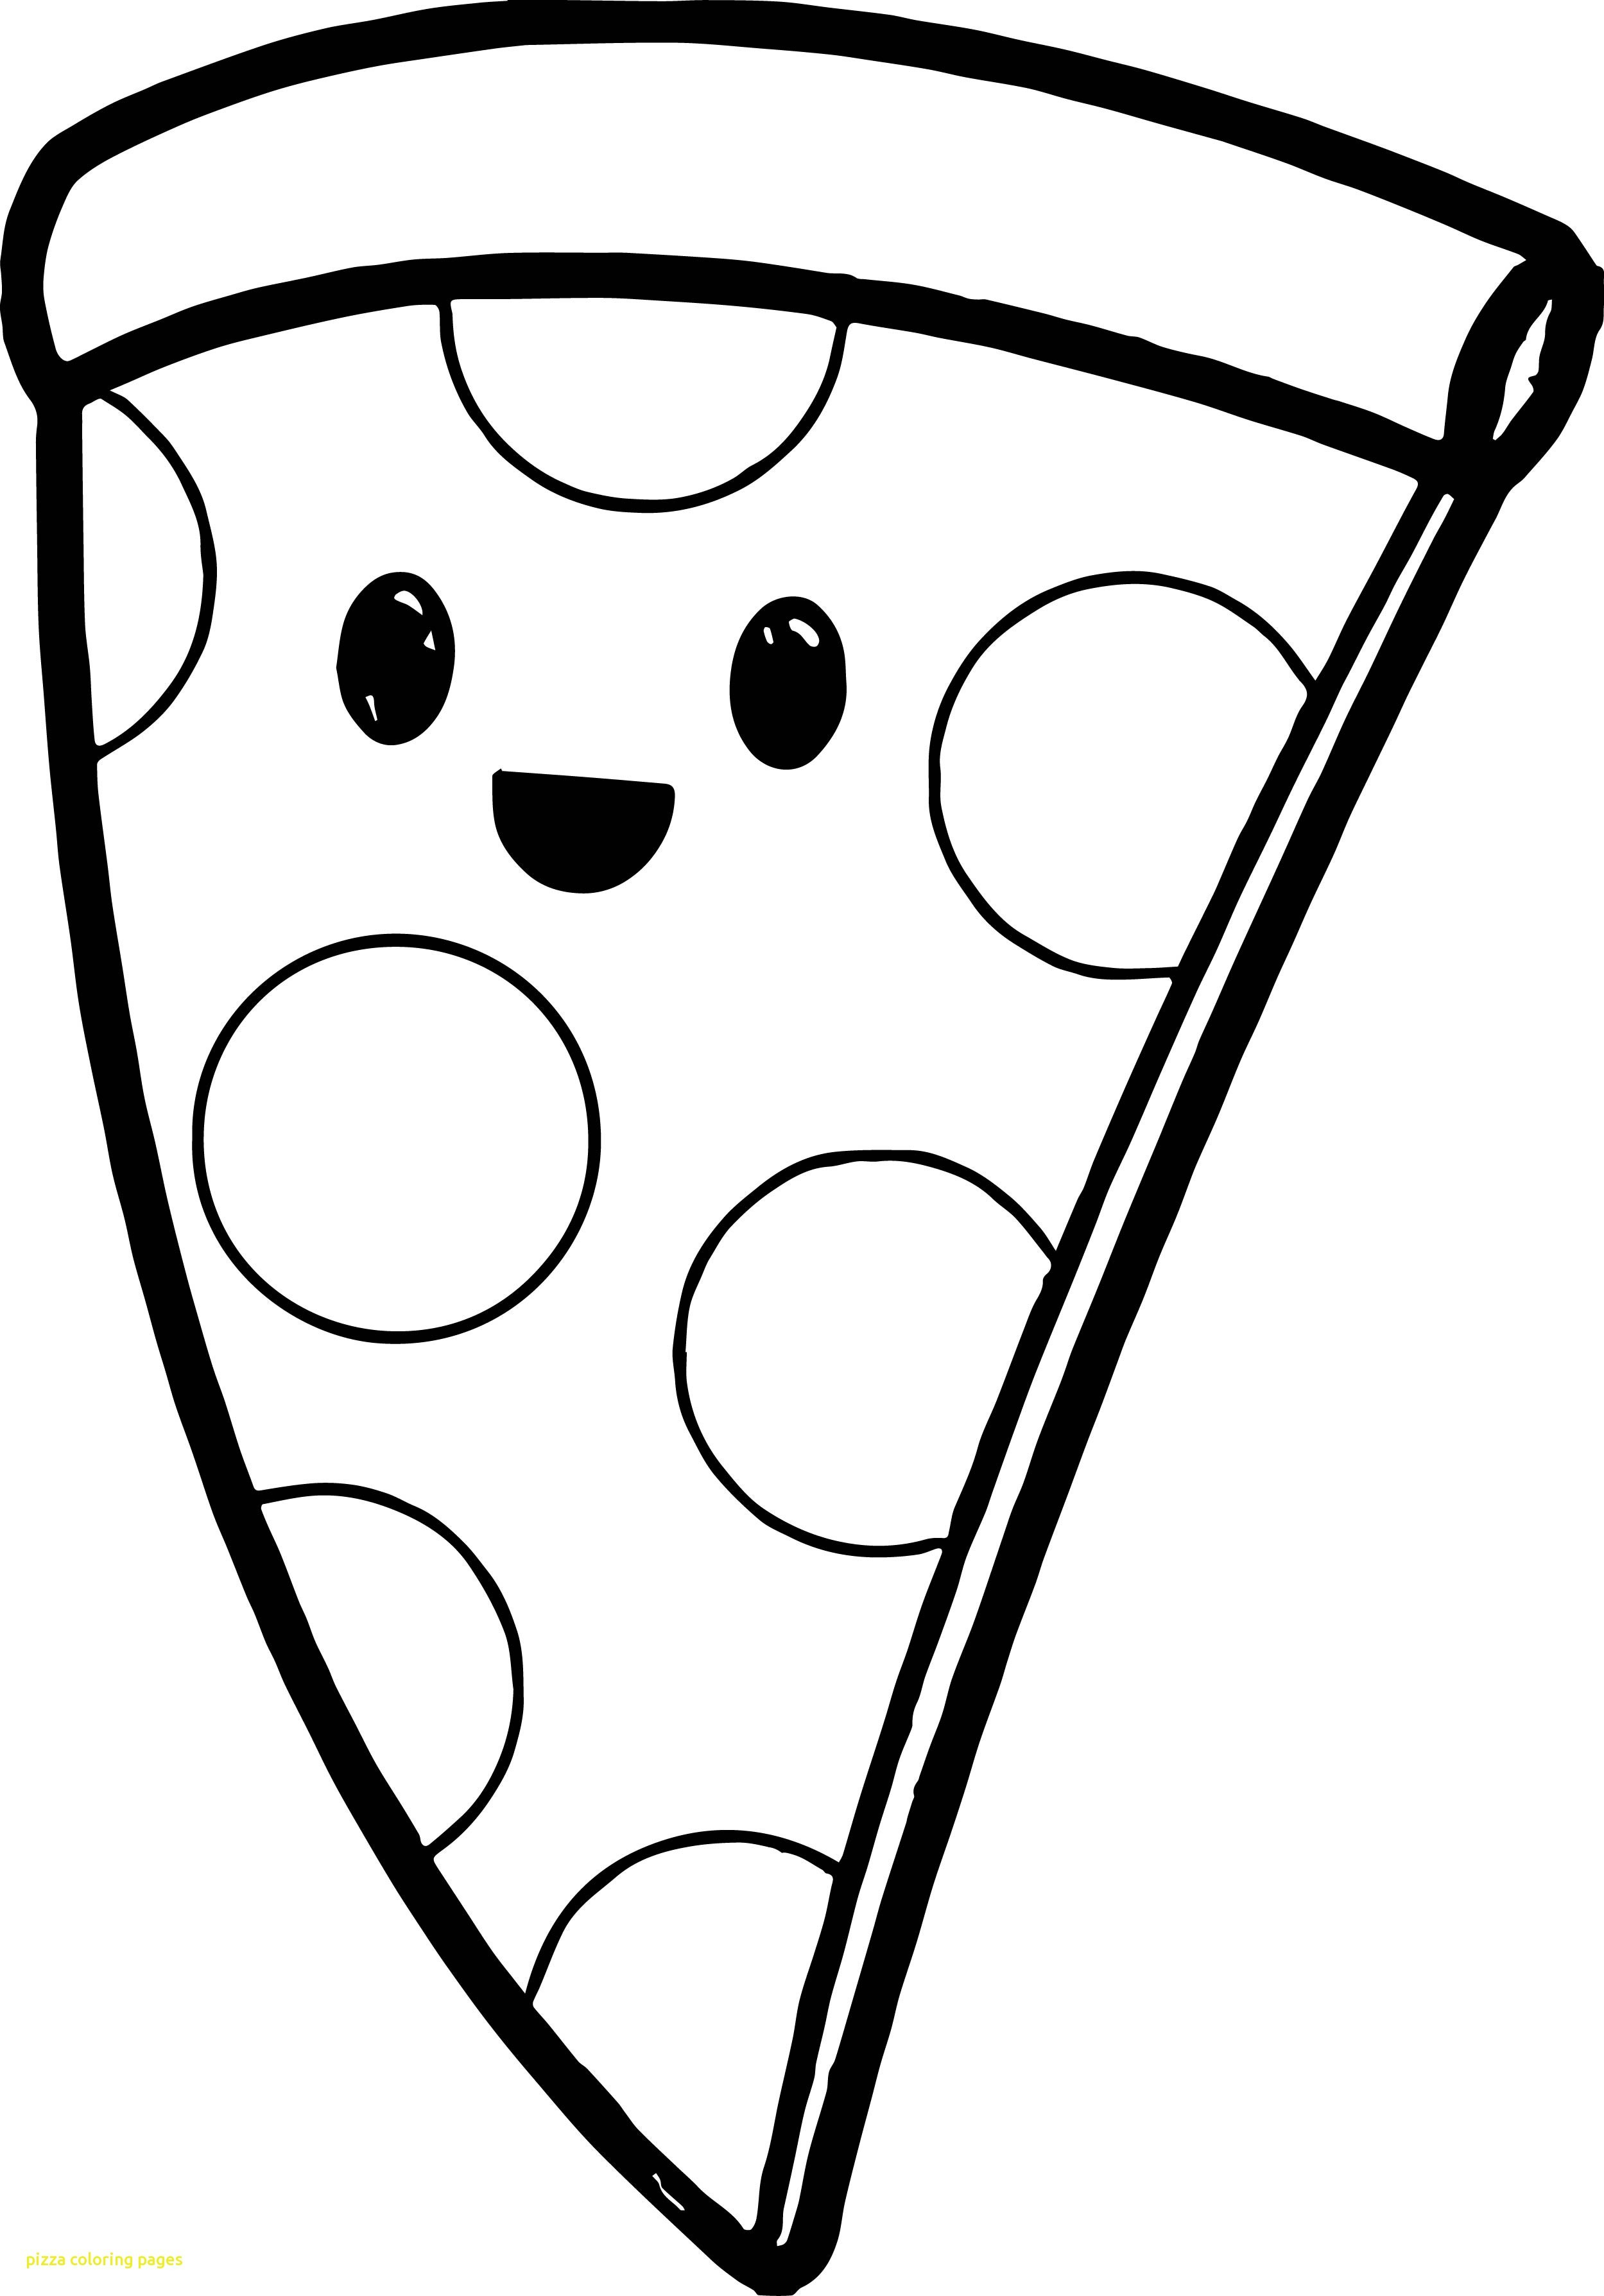 2499x3577 Make A Pizza Coloring Page Unique Pizza Steve Drawing